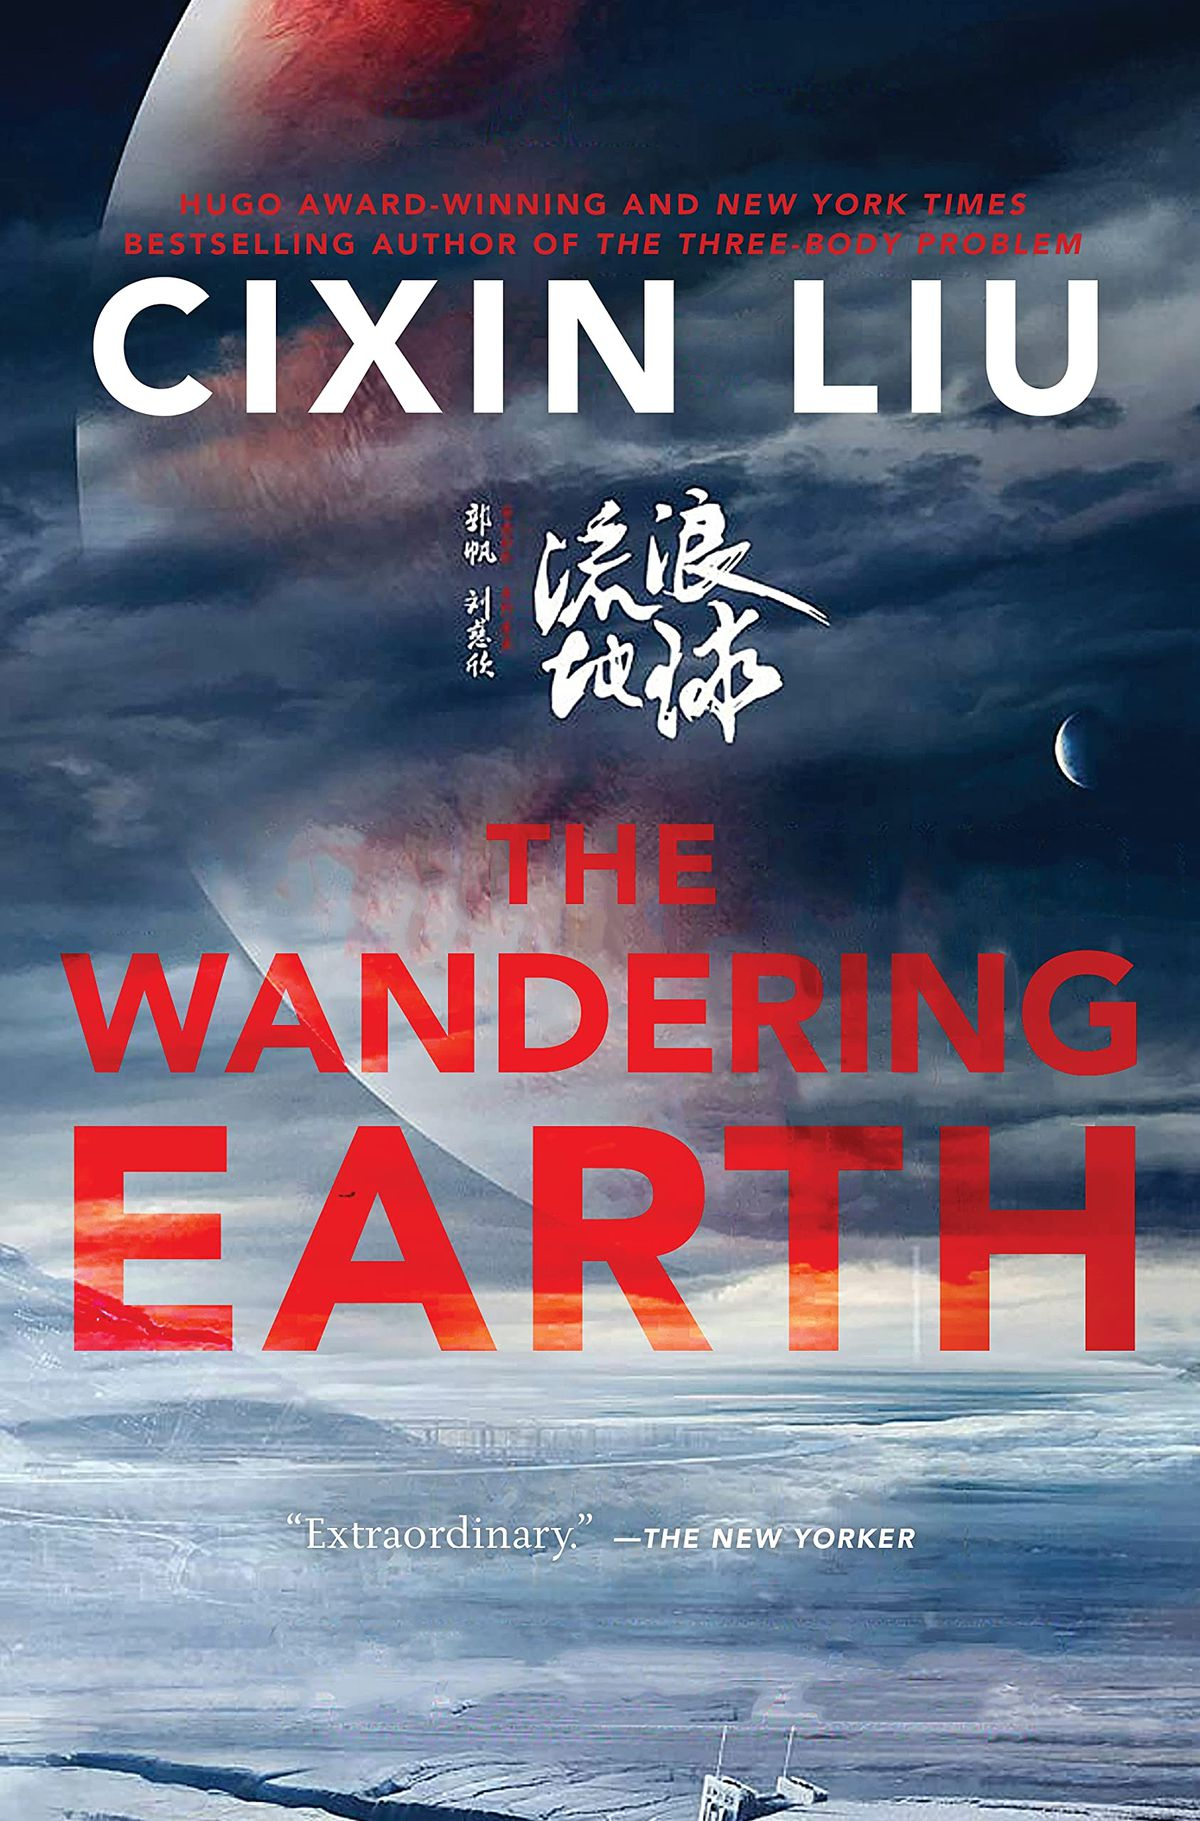 The Wandering Earth book cover with a giant planet in space